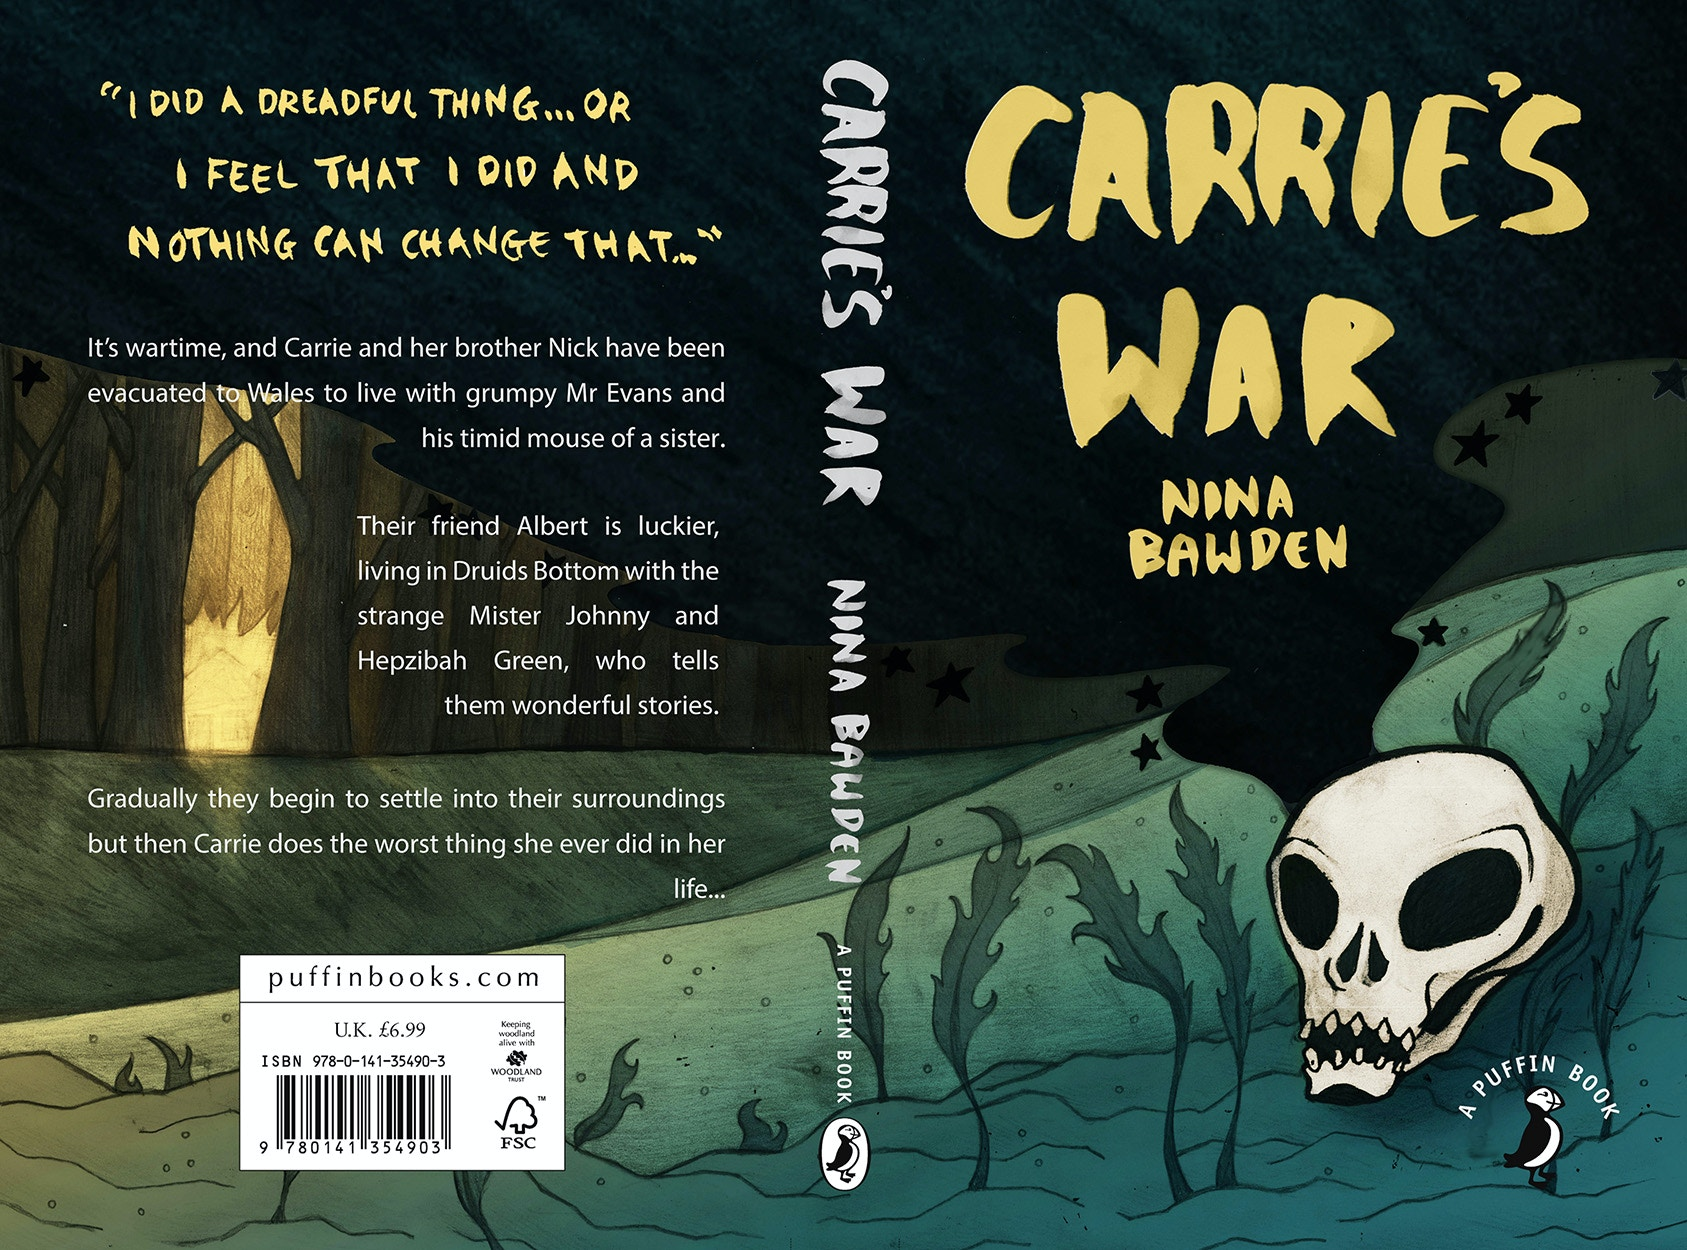 Carrie's War Penguin Design Awards Competition 2015